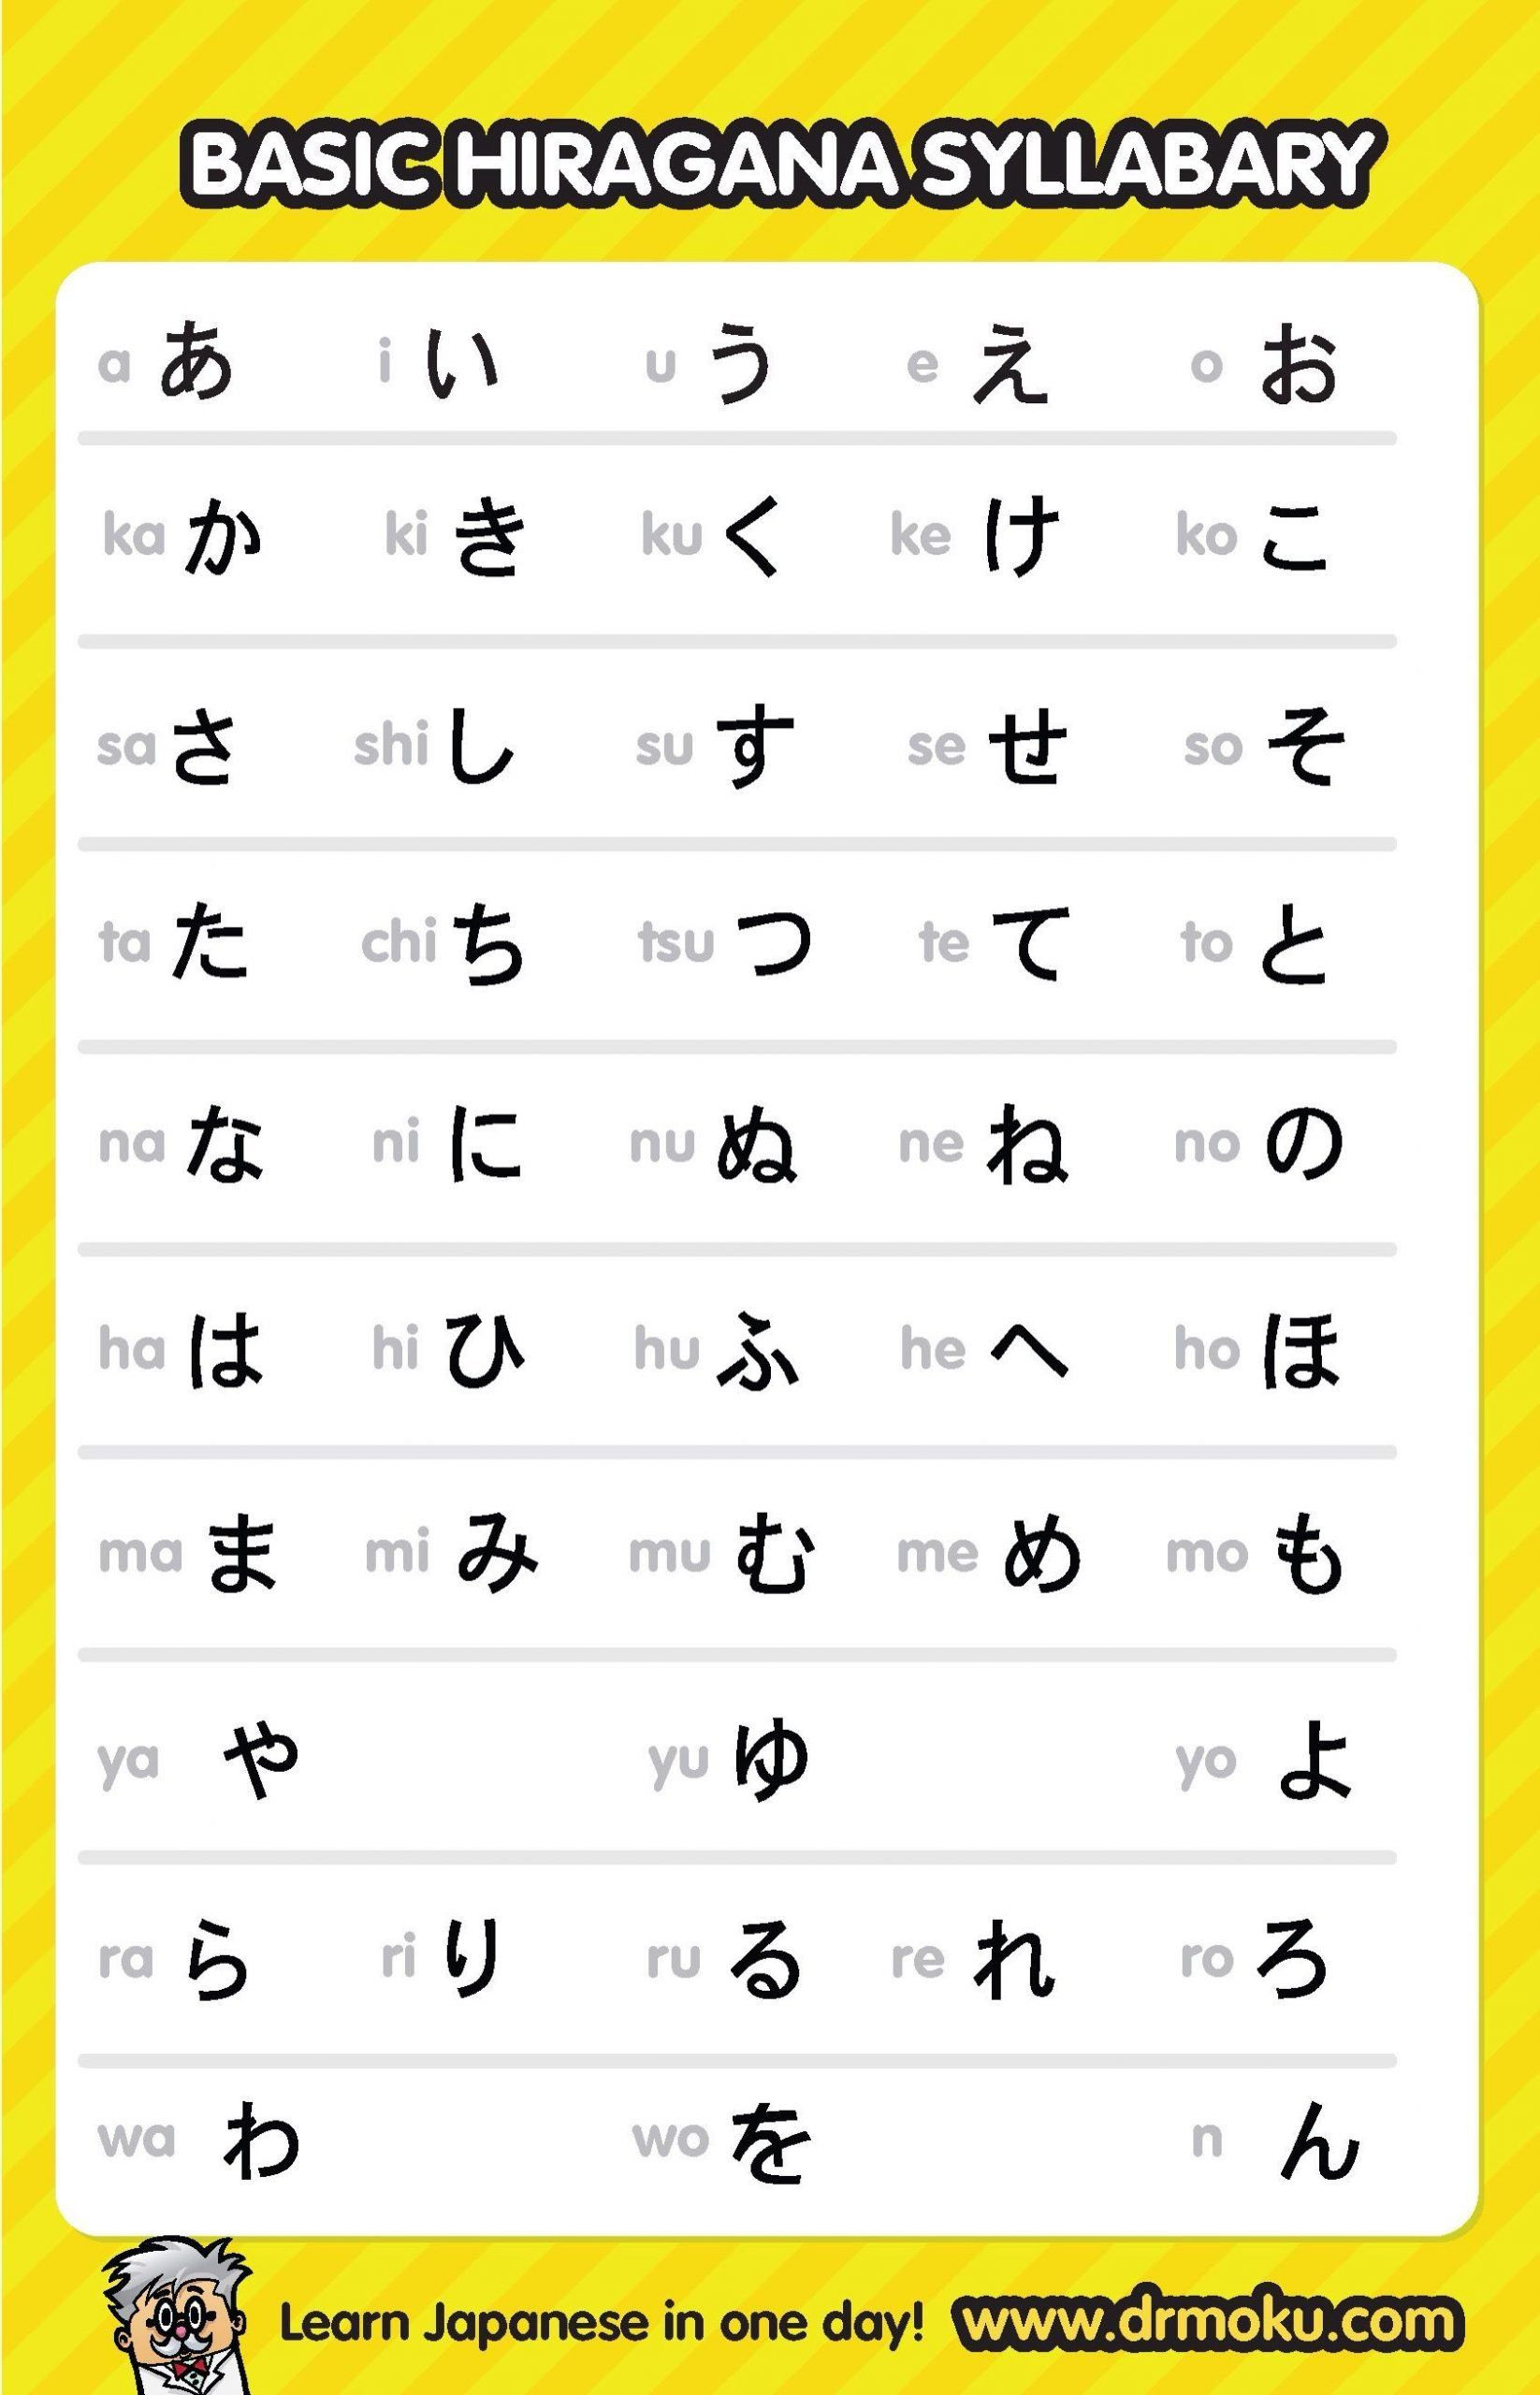 Printable Hiragana Worksheets Printable Hiragana Worksheets Romaji to Hiragana Worksheet